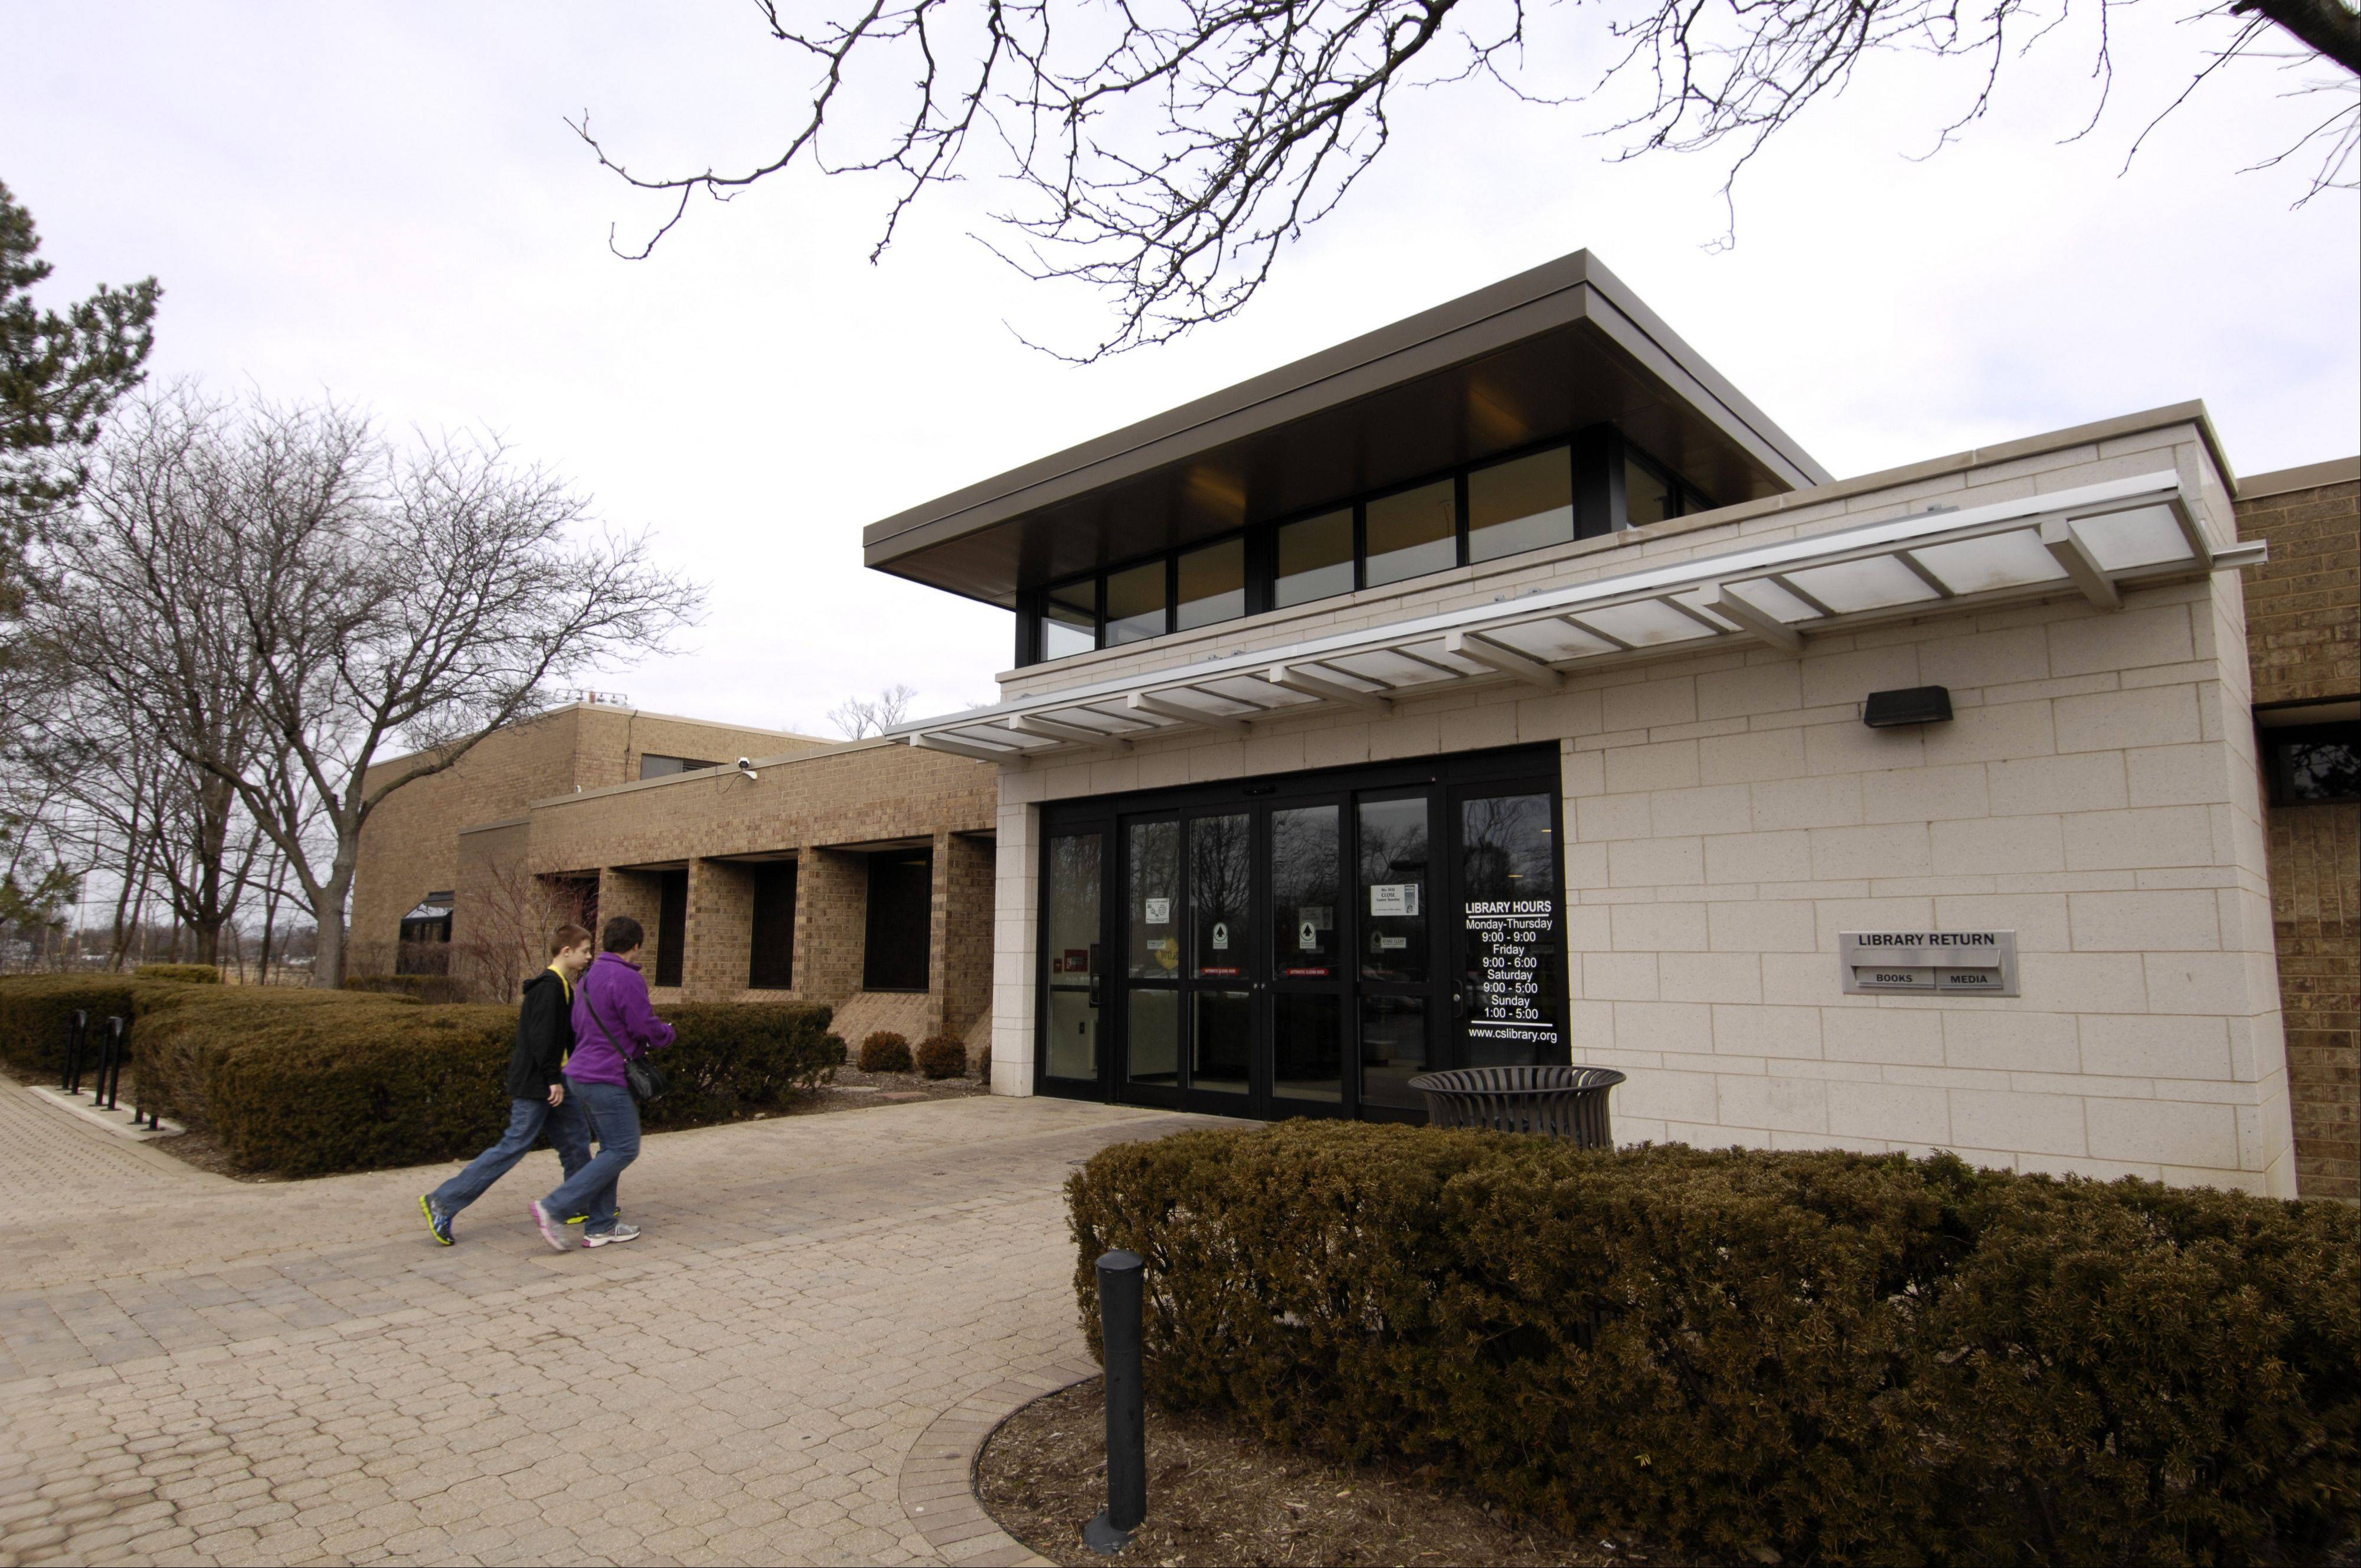 Much controversy has surrounded the Carol Stream Public Library since a new board majority took over last summer, and now an election will determine the library's future direction.